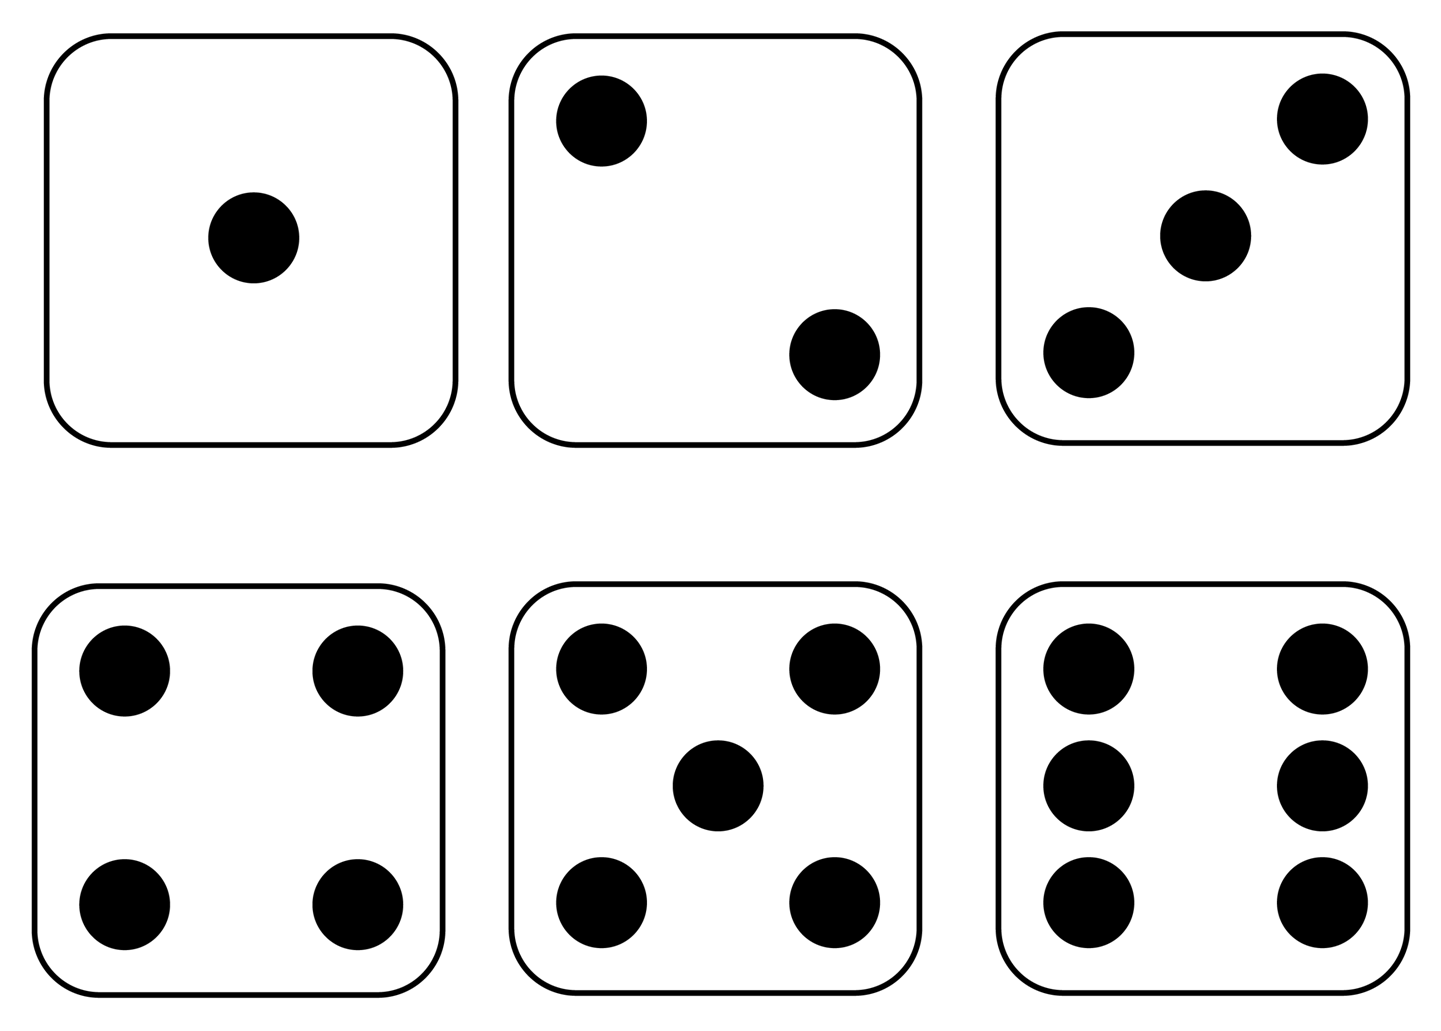 Dice clipart six. Free images download clip